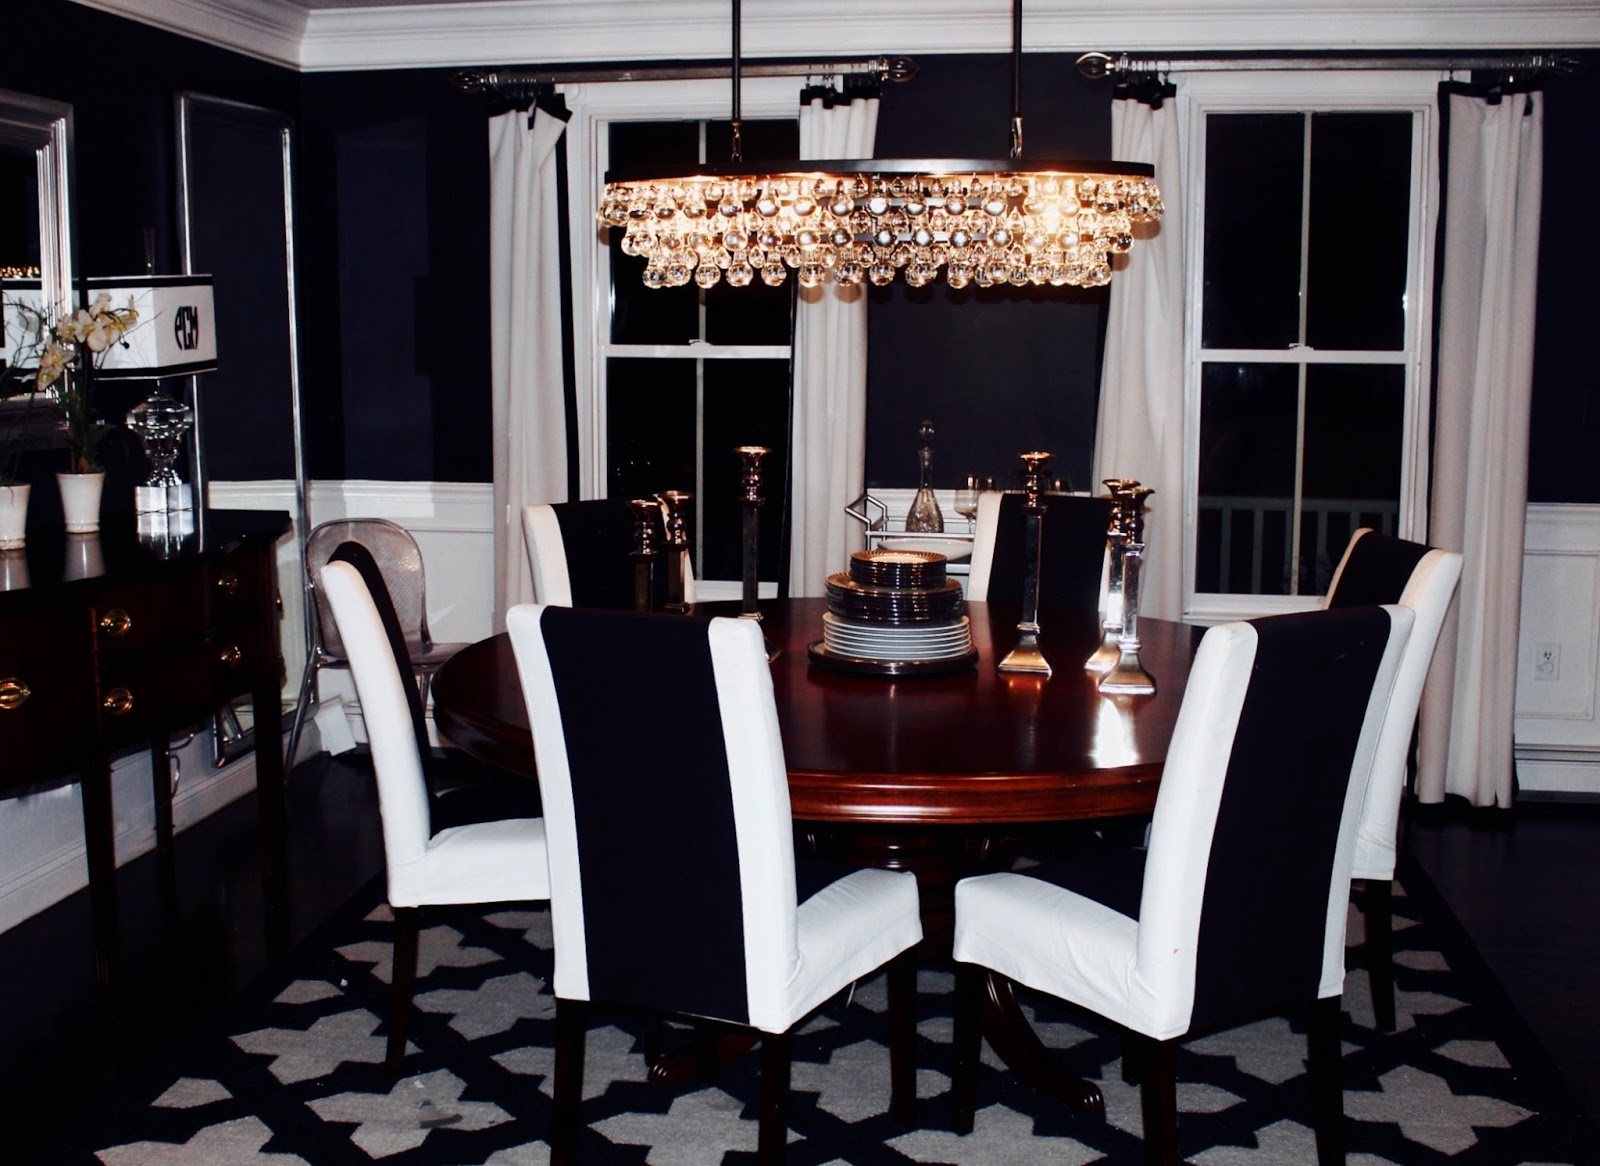 Dining room chandelier review robert abbey lots of beautiful rooms